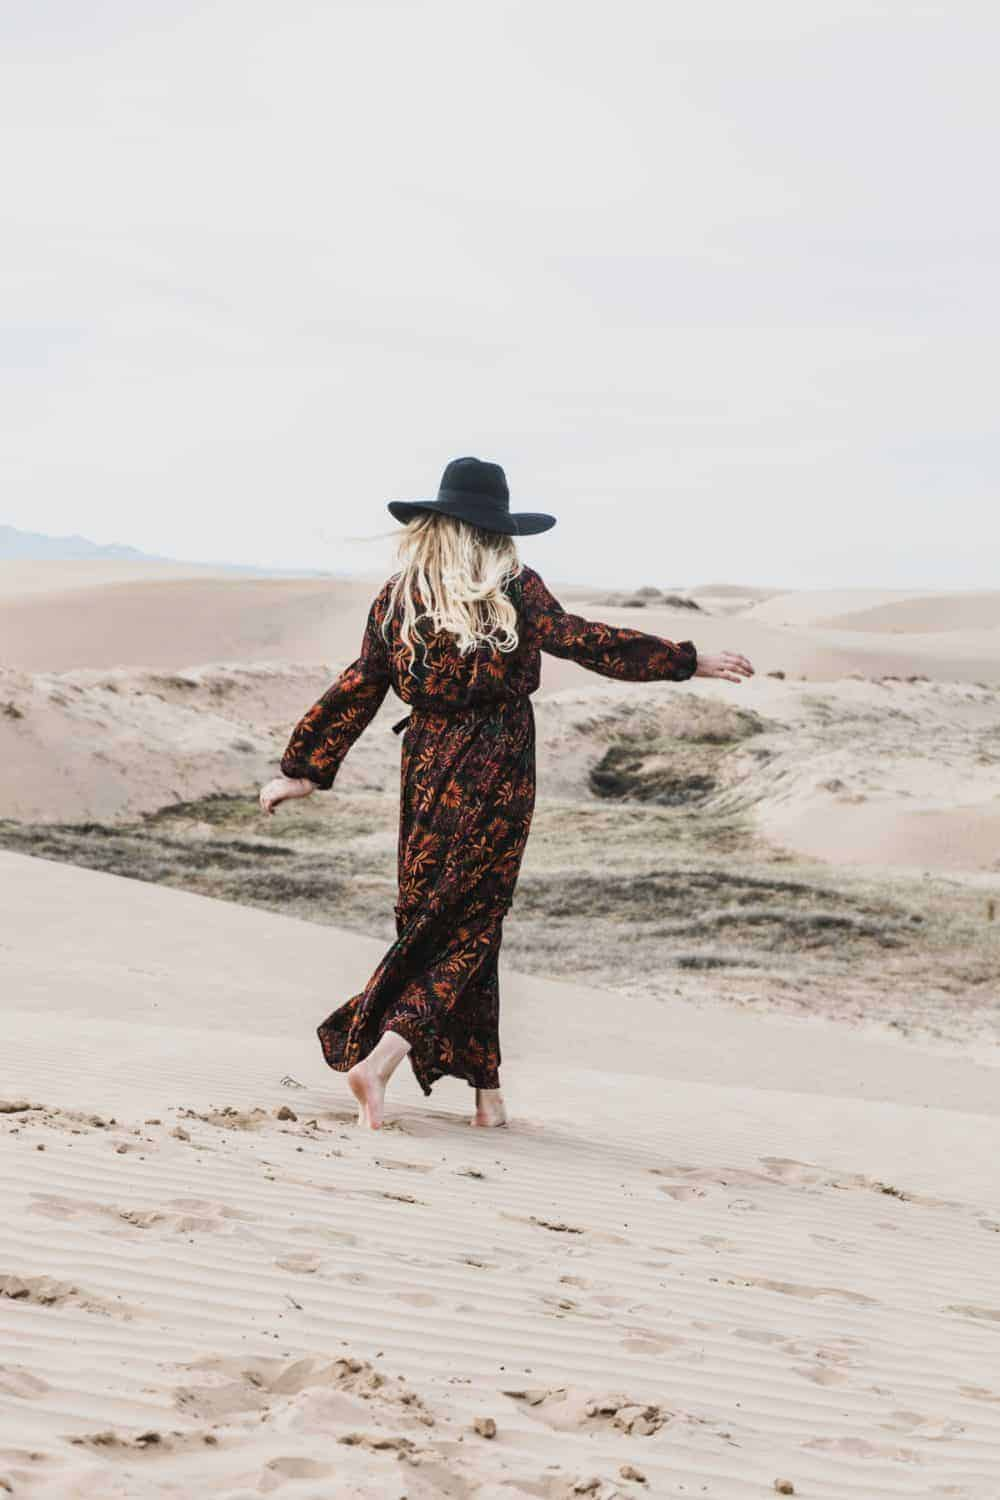 Wearing a Gandoura in the Moroccan desert